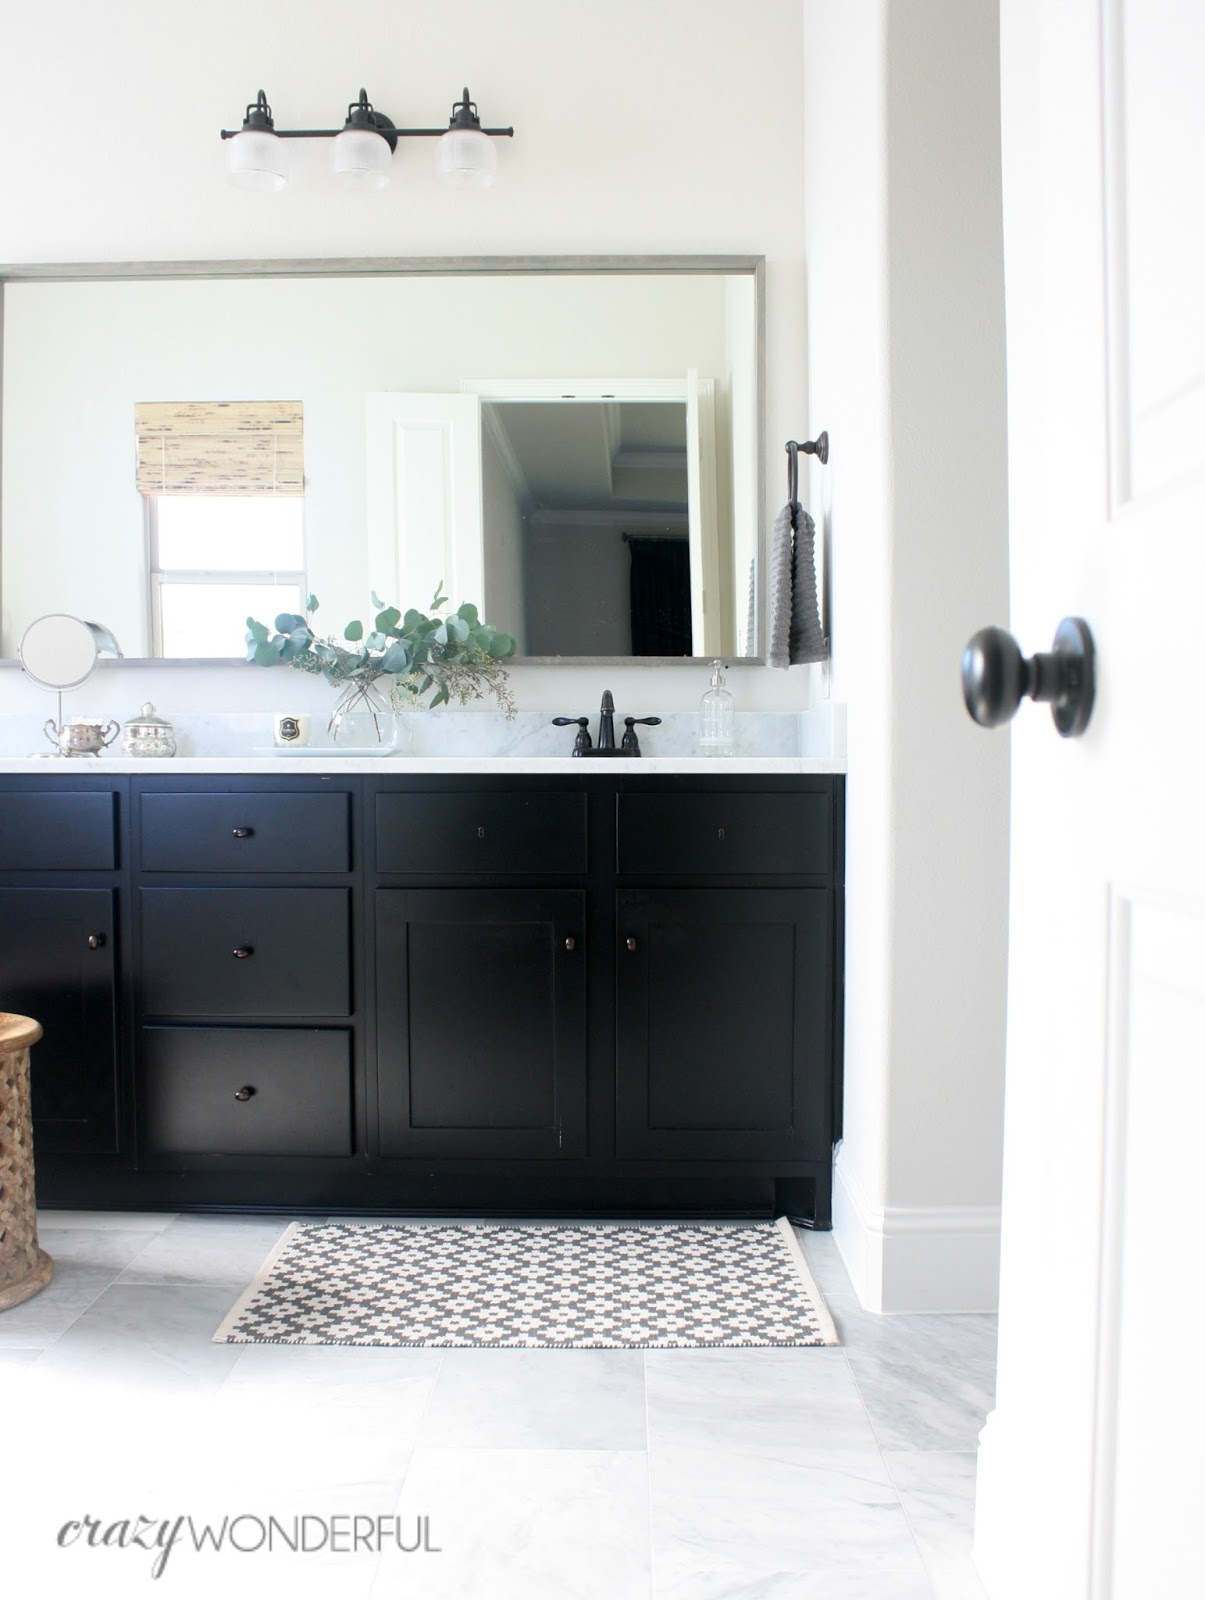 Fresh  can add a faux keyhole like I did in our master bathroom It us more of a subtle addition but I love how it makes the vanity look a little more special